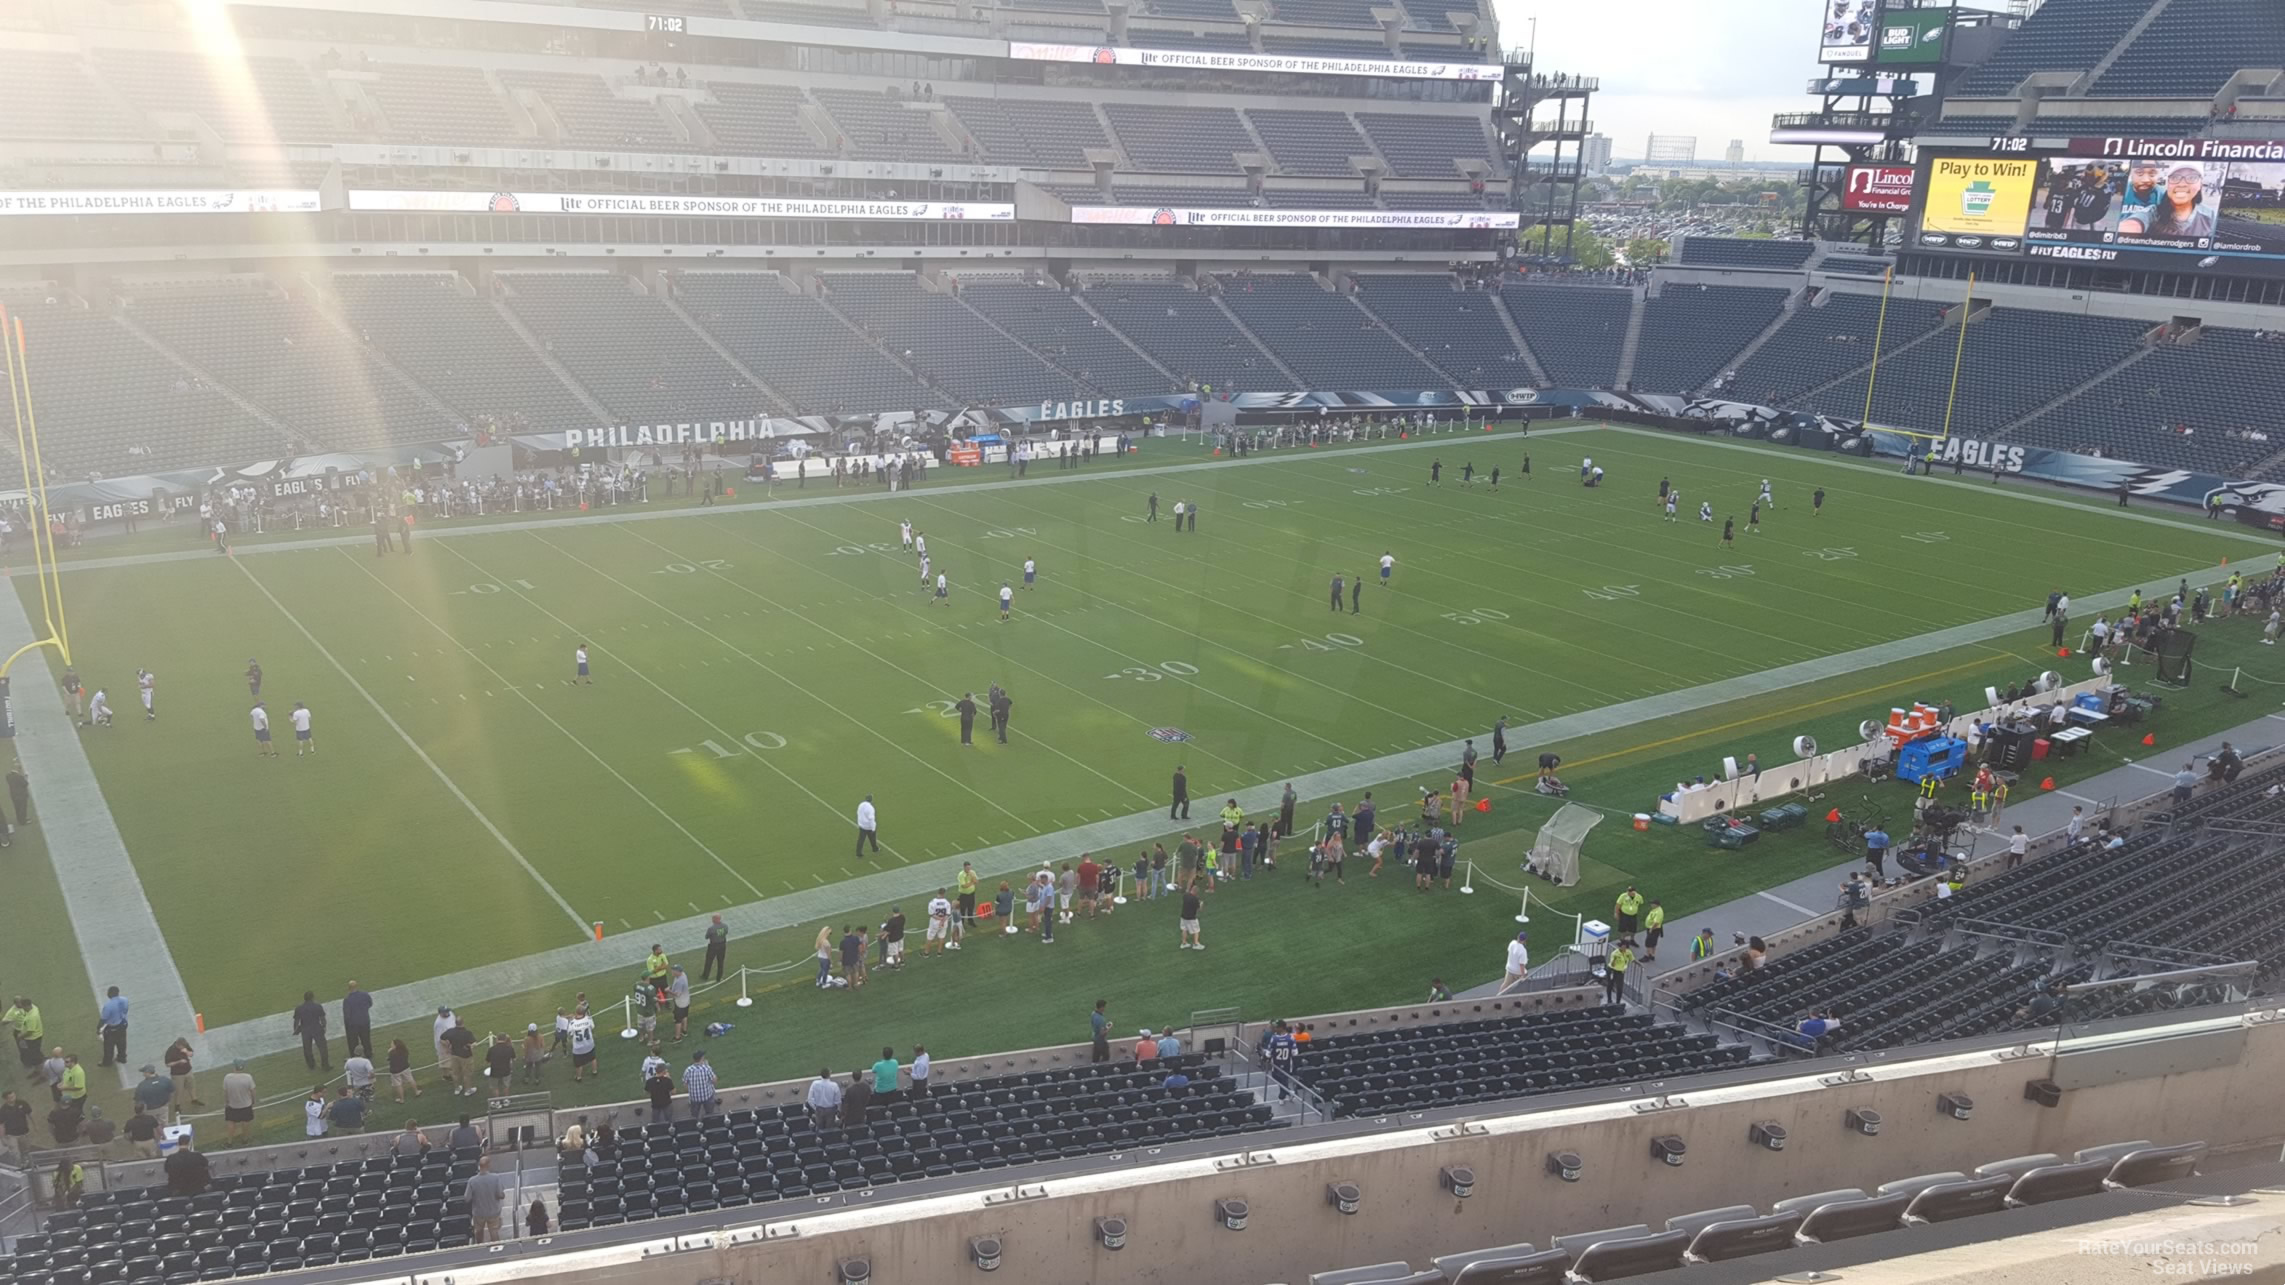 Club Level Lincoln Financial Field Football Seating